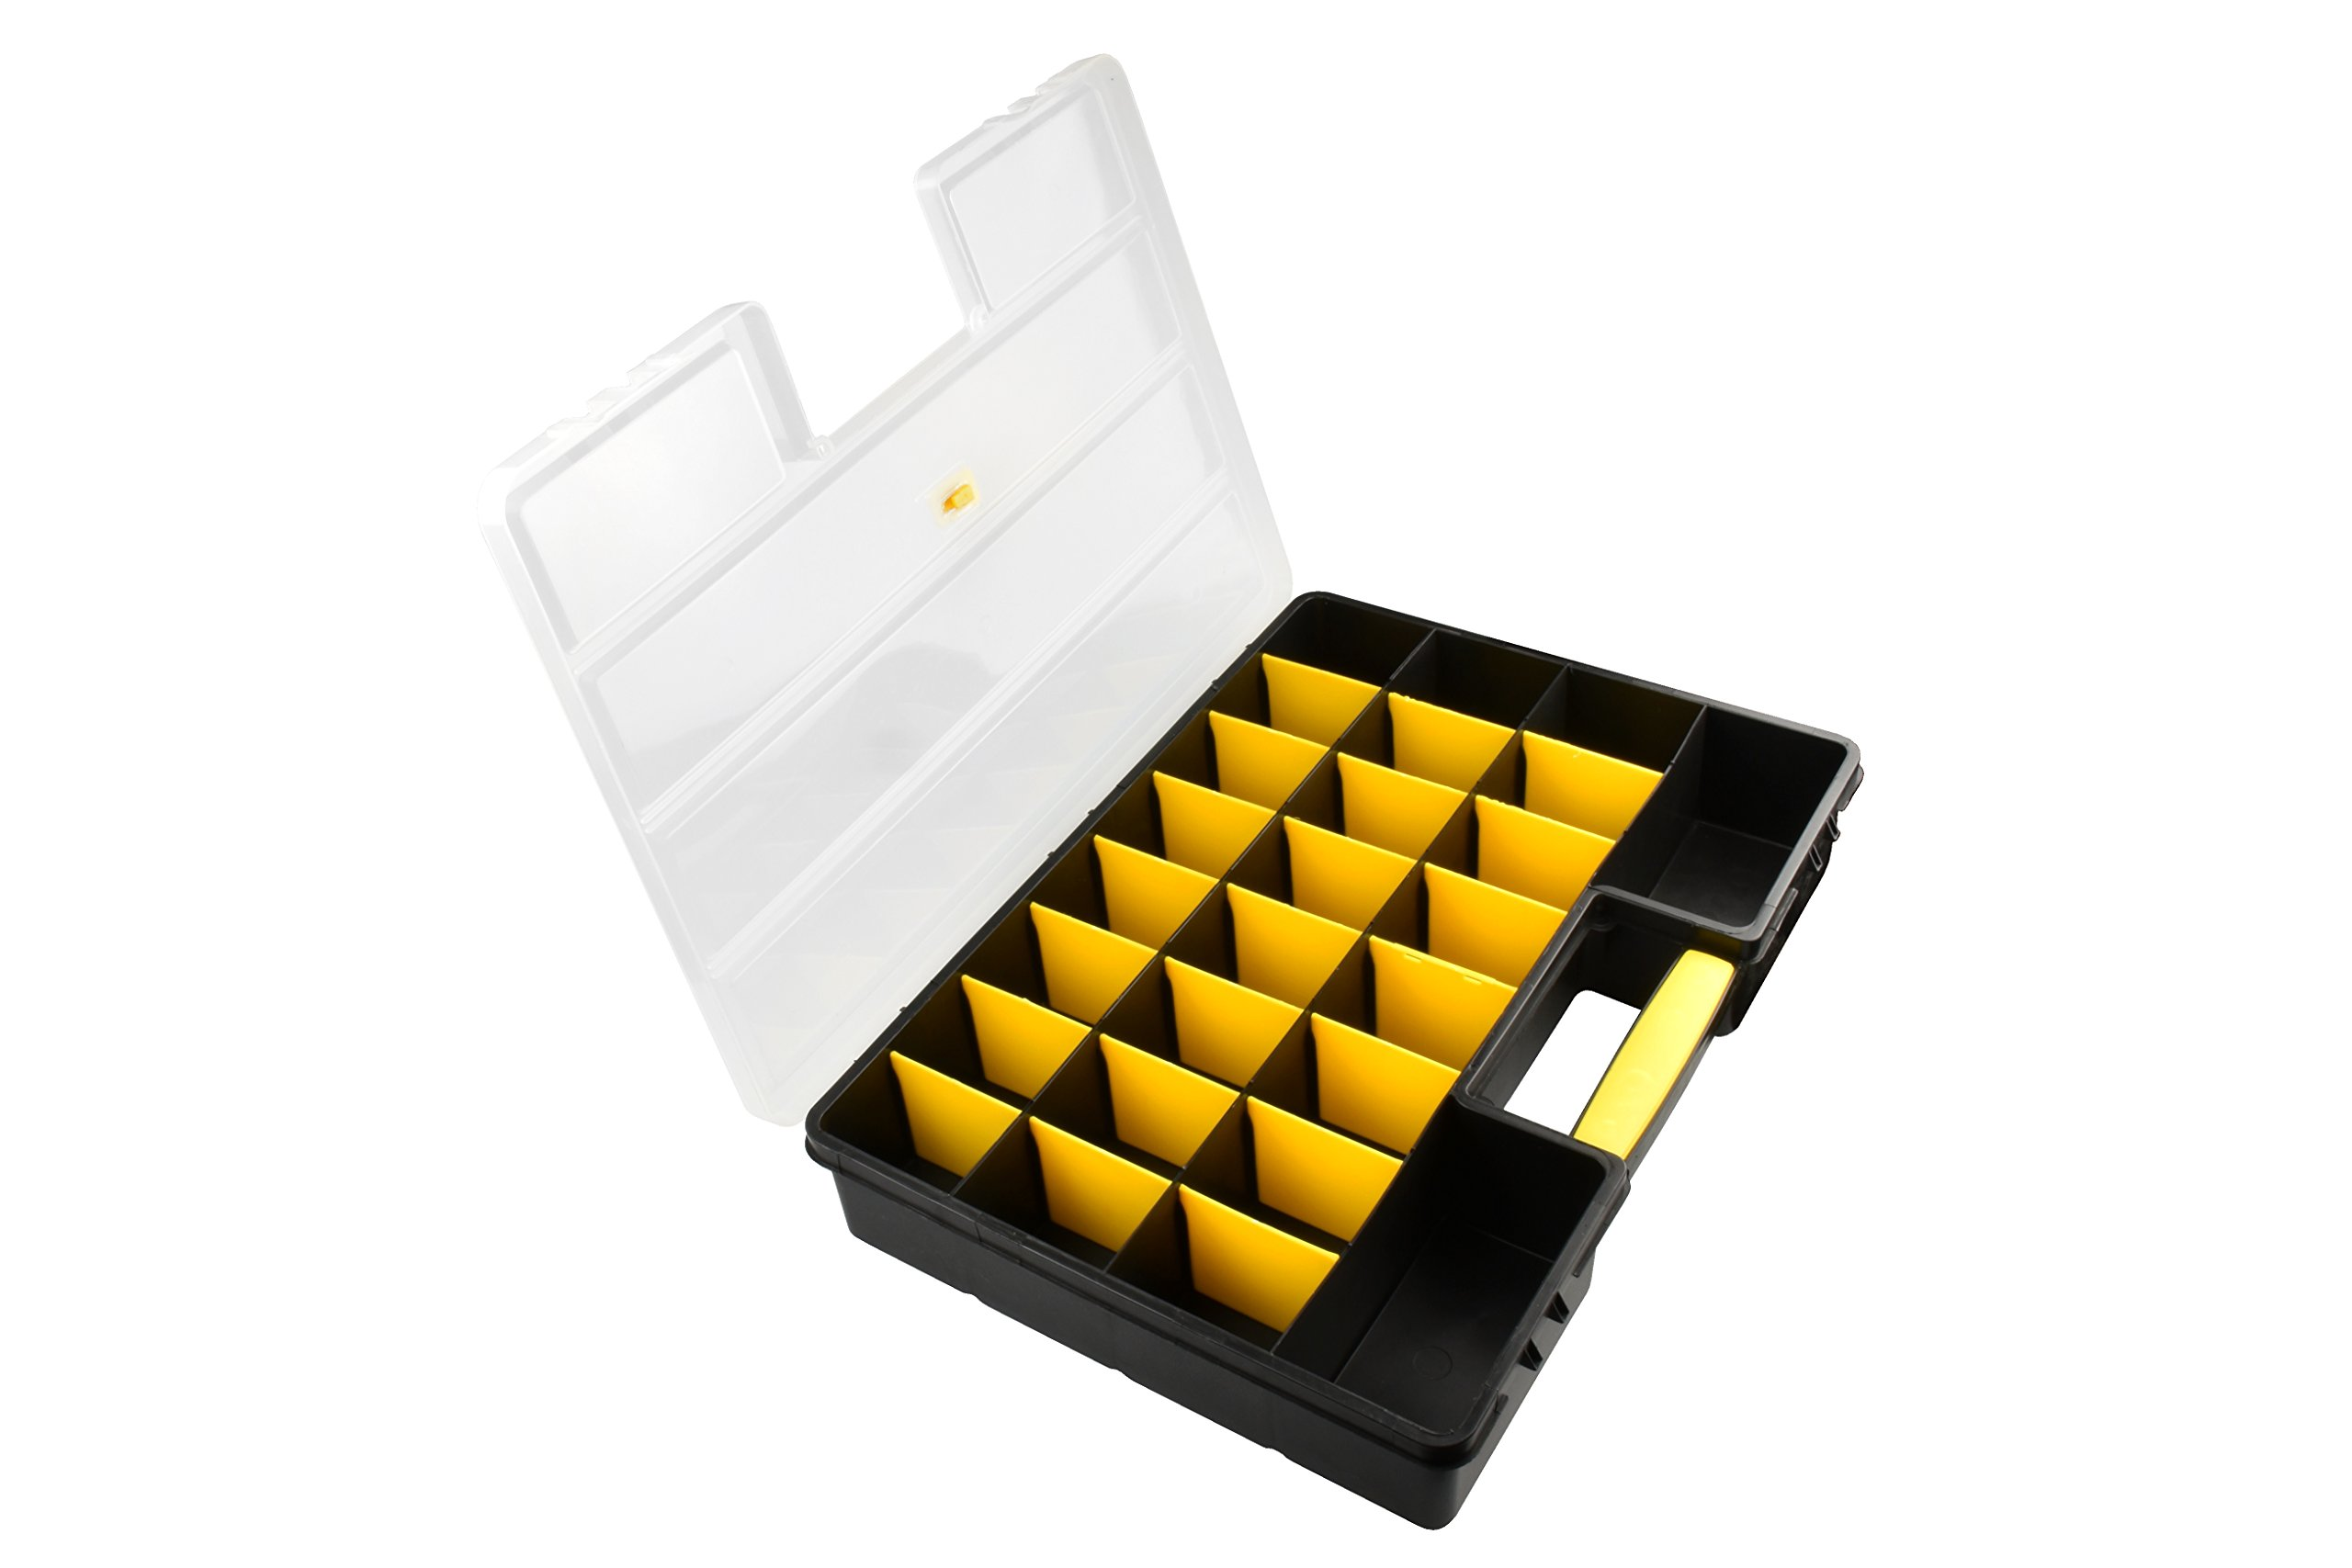 SE 87322DB 26 Compartment Large Plastic Storage Box with Adjustable Sections, 18'' x 12'' x 3'', Black/Yellow/Clear